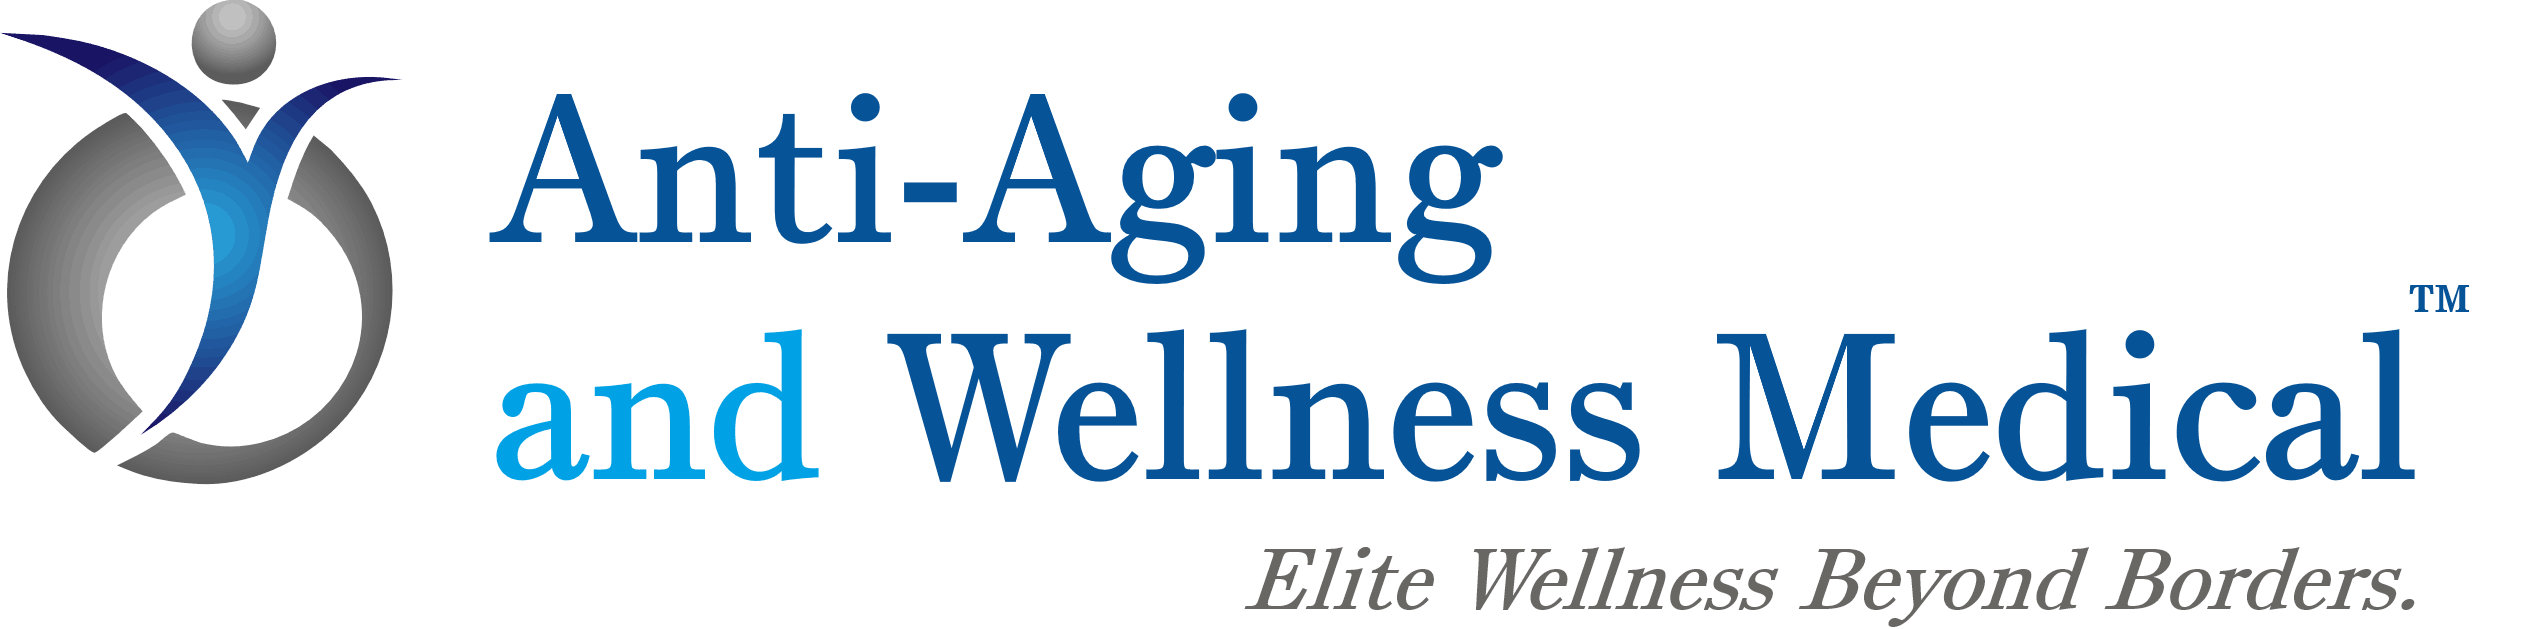 Anti-Aging and Wellness Medical (Costa Rica, Tijuana Mexico, Florida